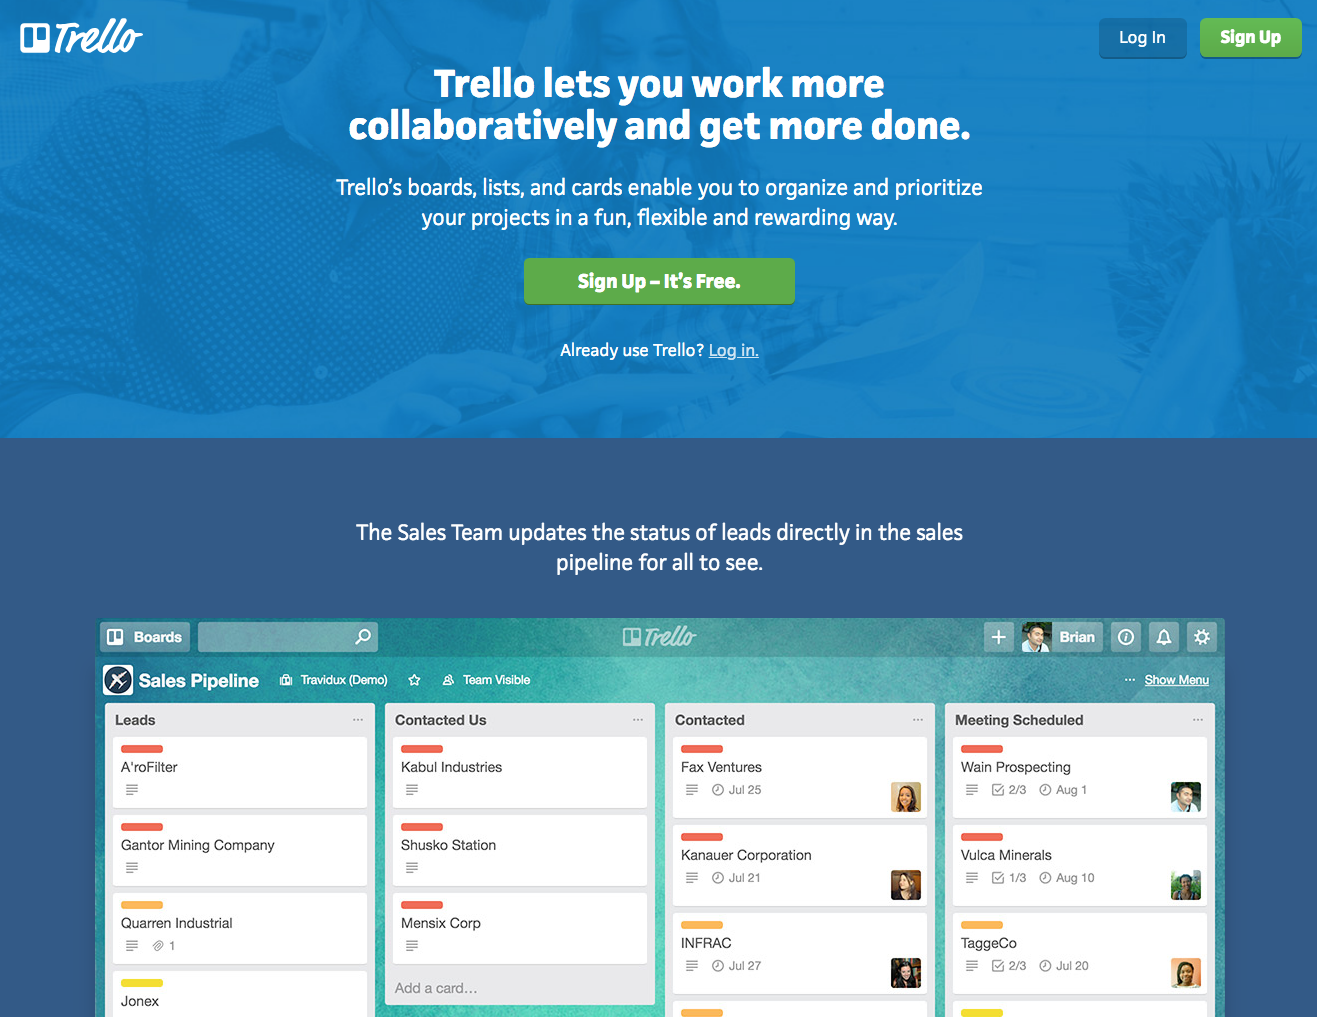 Top tools for productivity - Trello